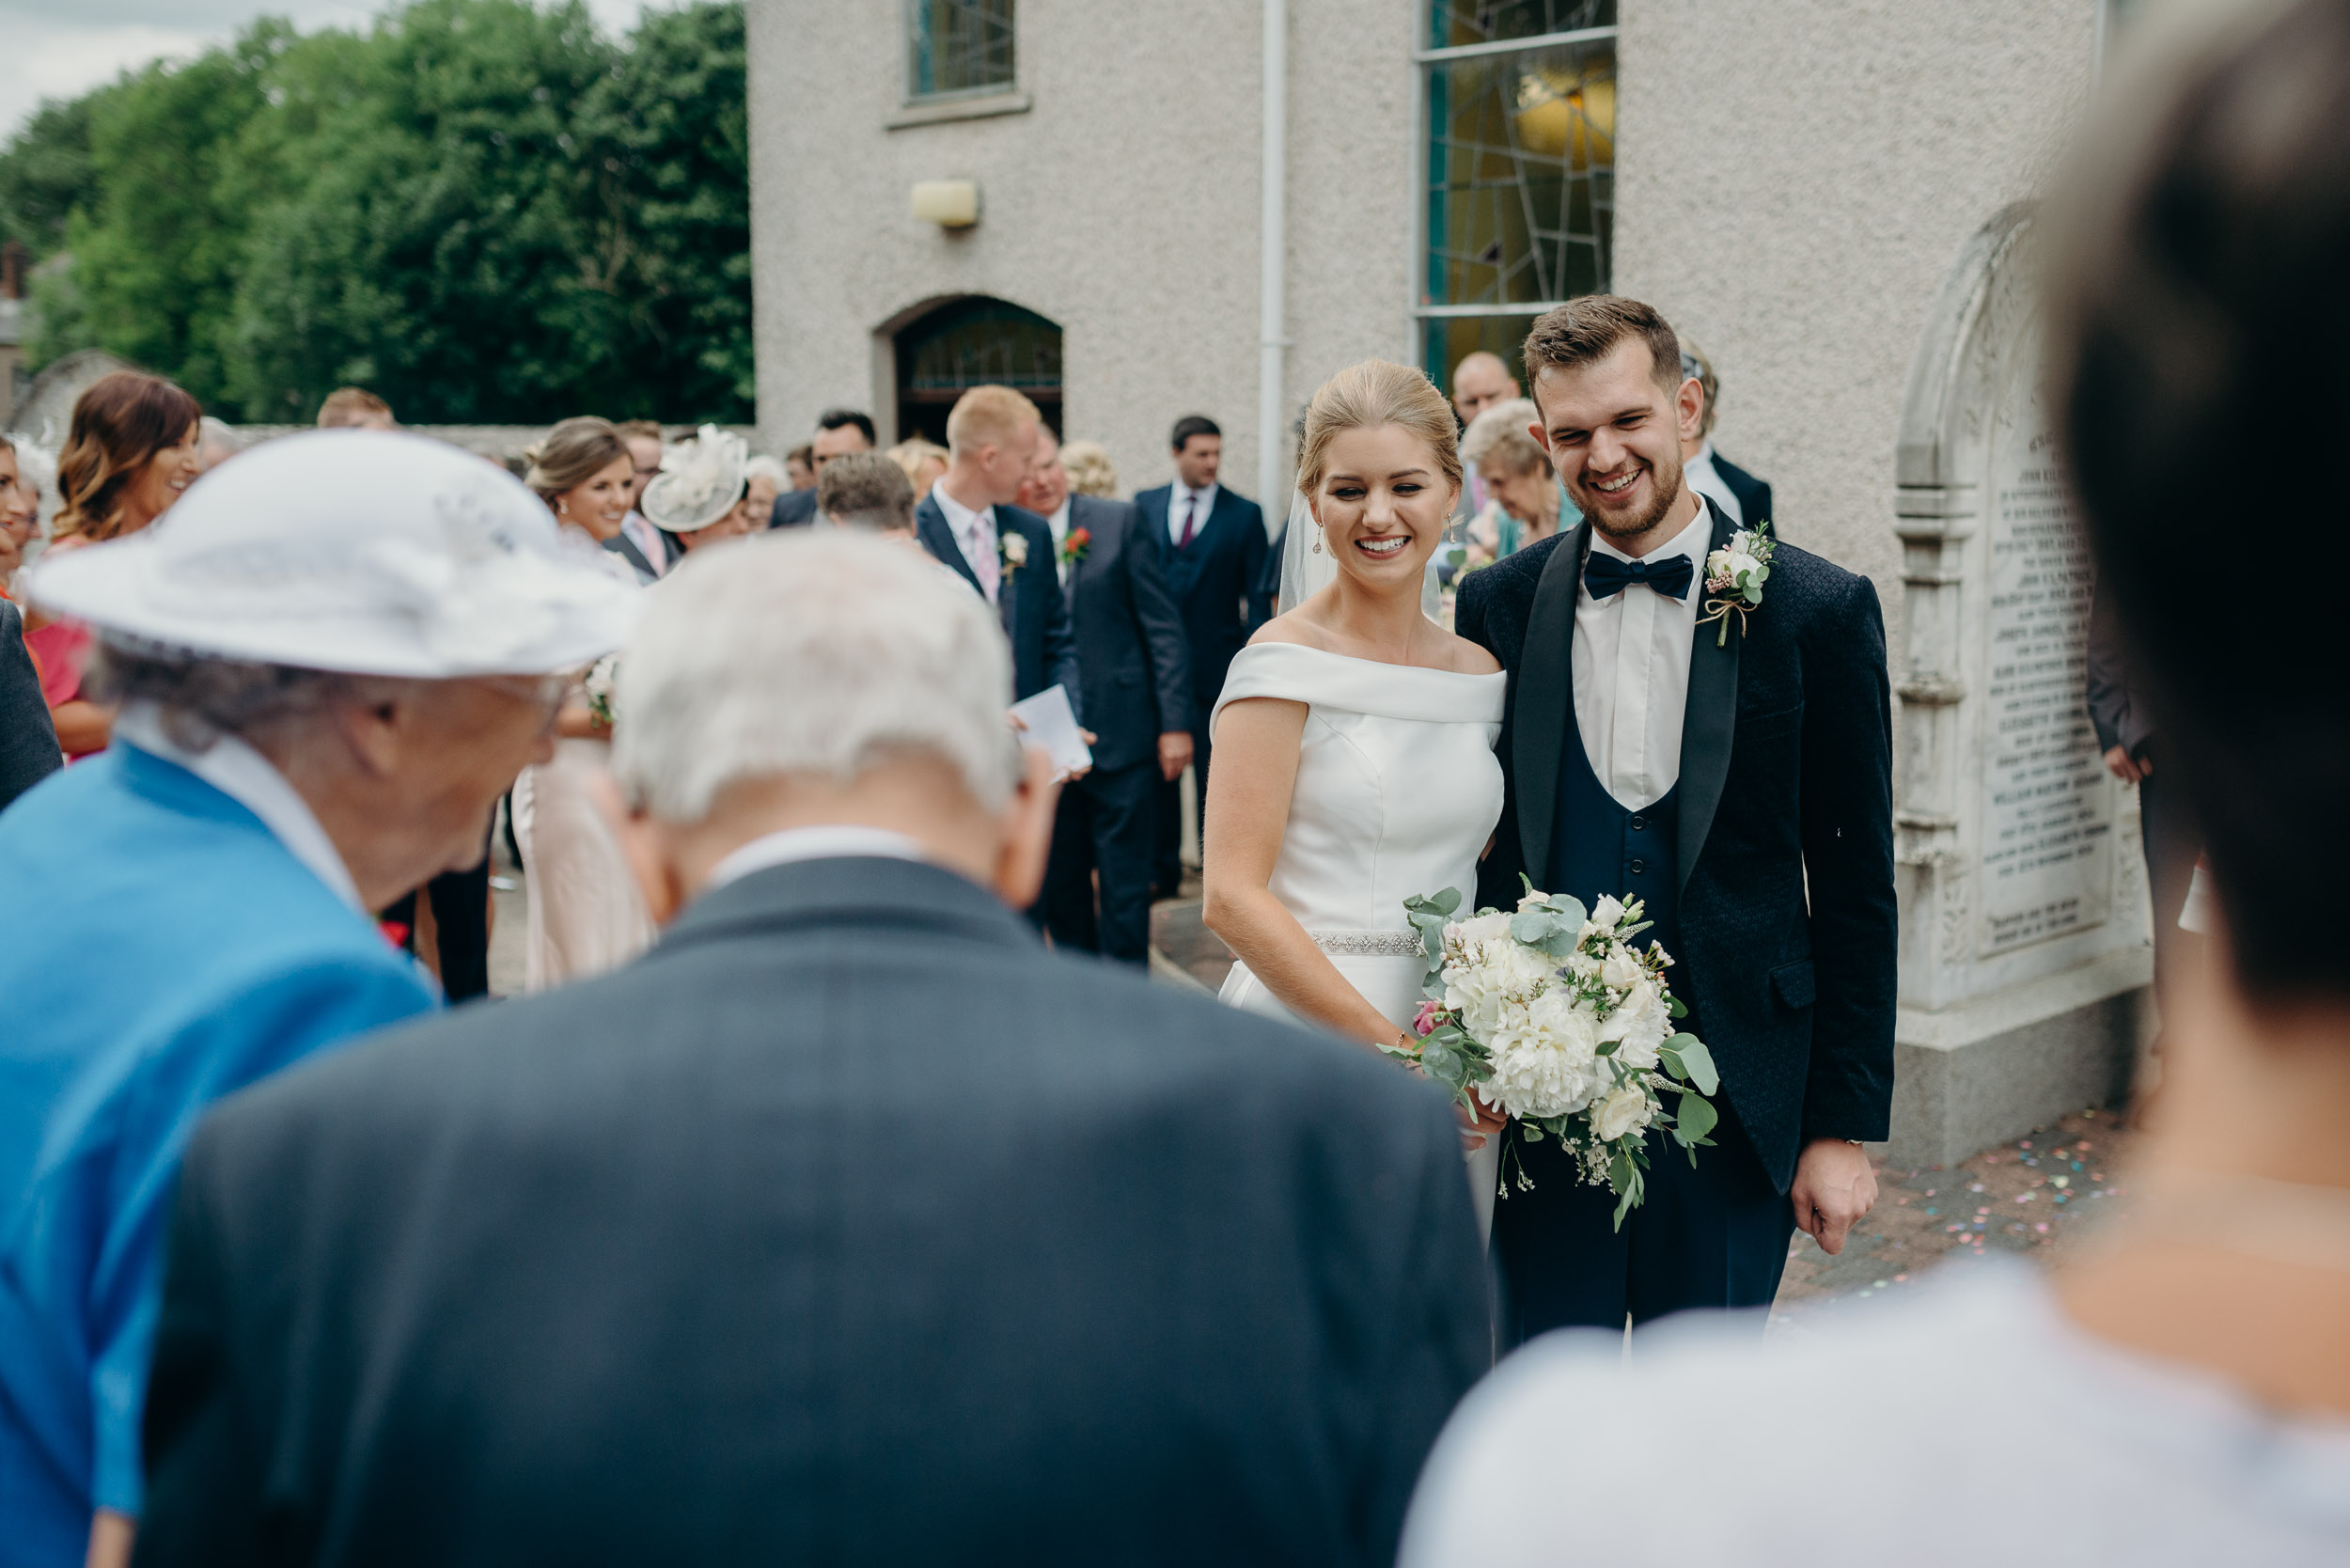 gracehall northern ireland wedding photos-95.jpg